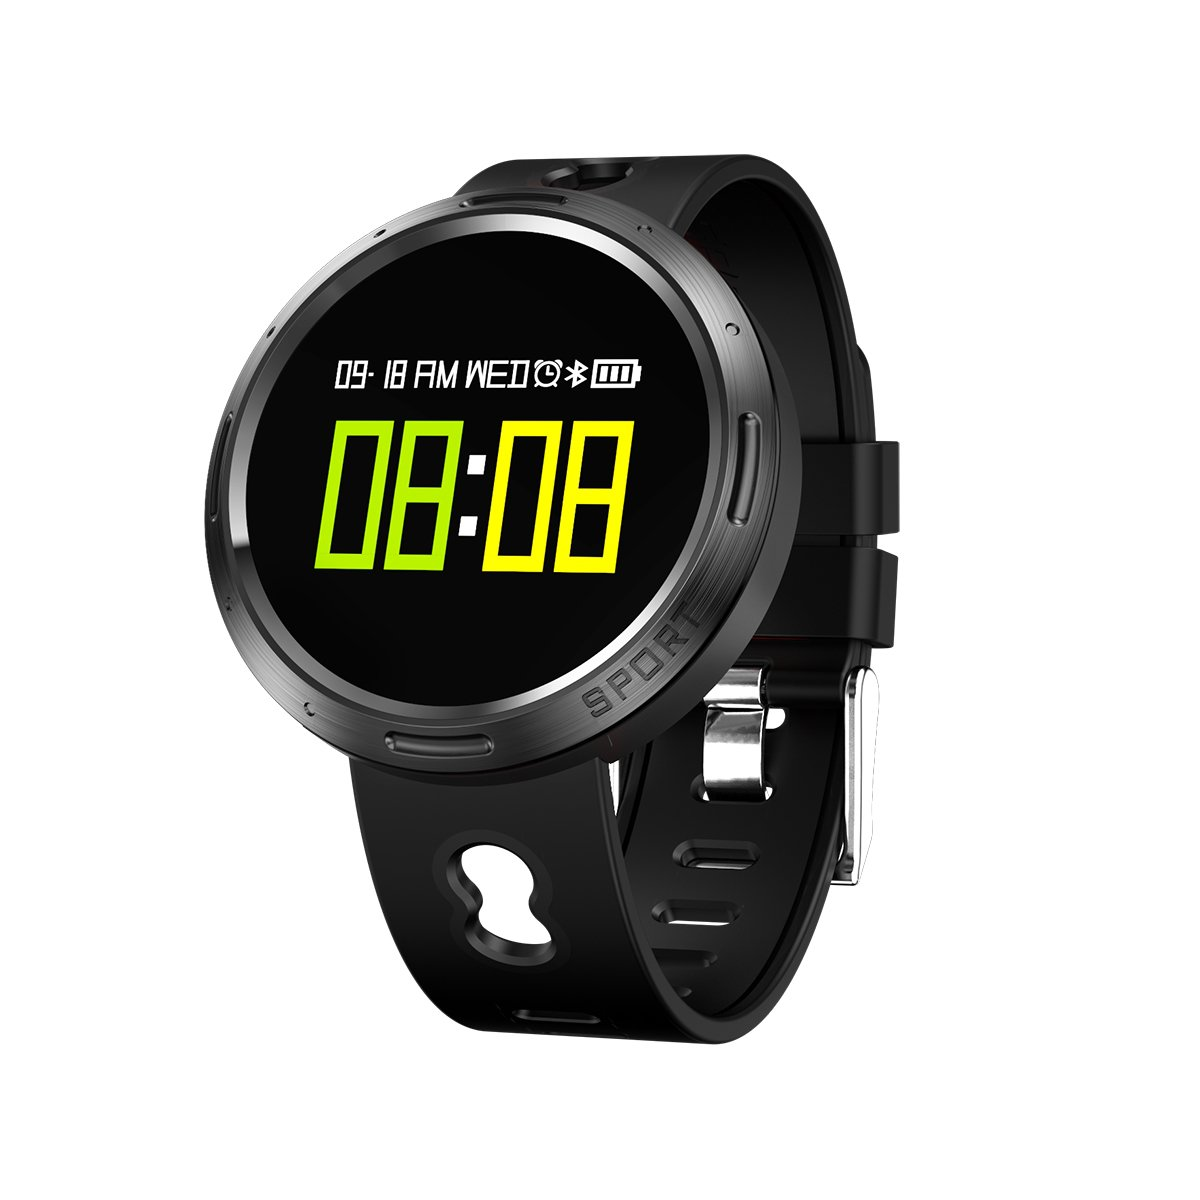 Smart Watch Fitness Tracker Heart Rate Monitor Tracker Smart Bracelet Activity Tracker Bluetooth Pedometer With Sleep Monitor And Color Screen For Adults Kids (Color : Black)